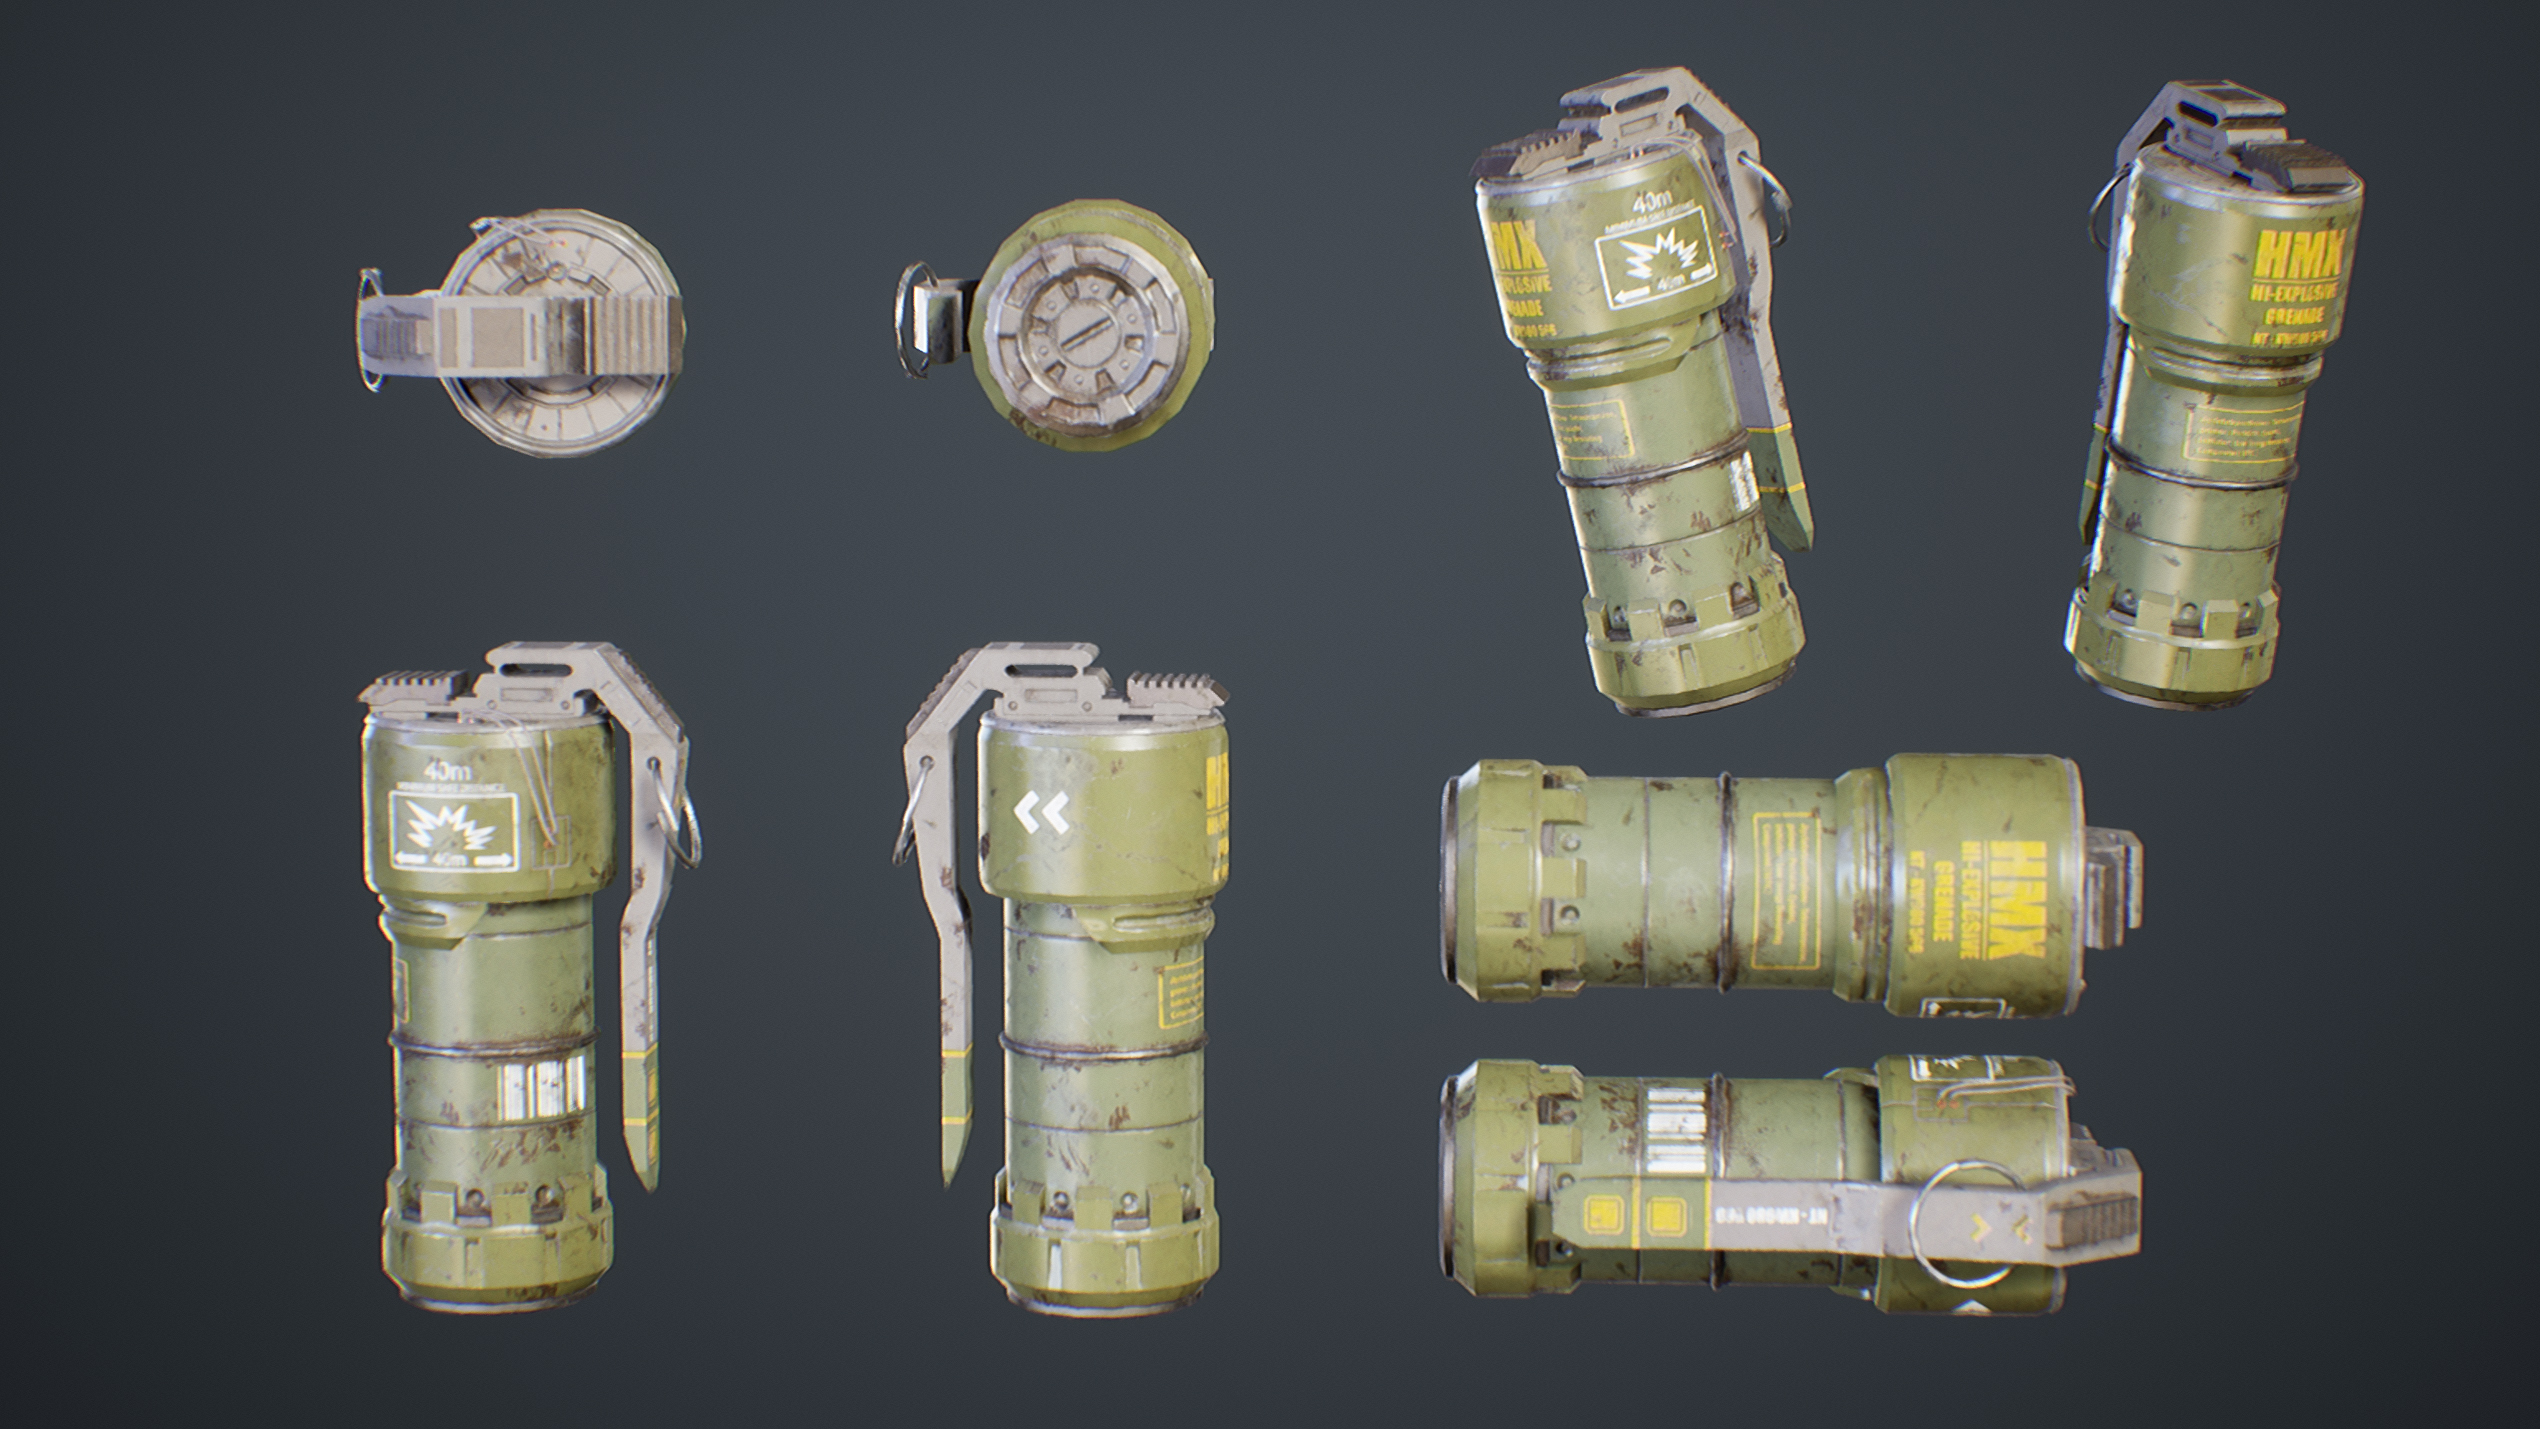 UE4 screenshot  multi angle view detailed shot of the sci-fi grenades